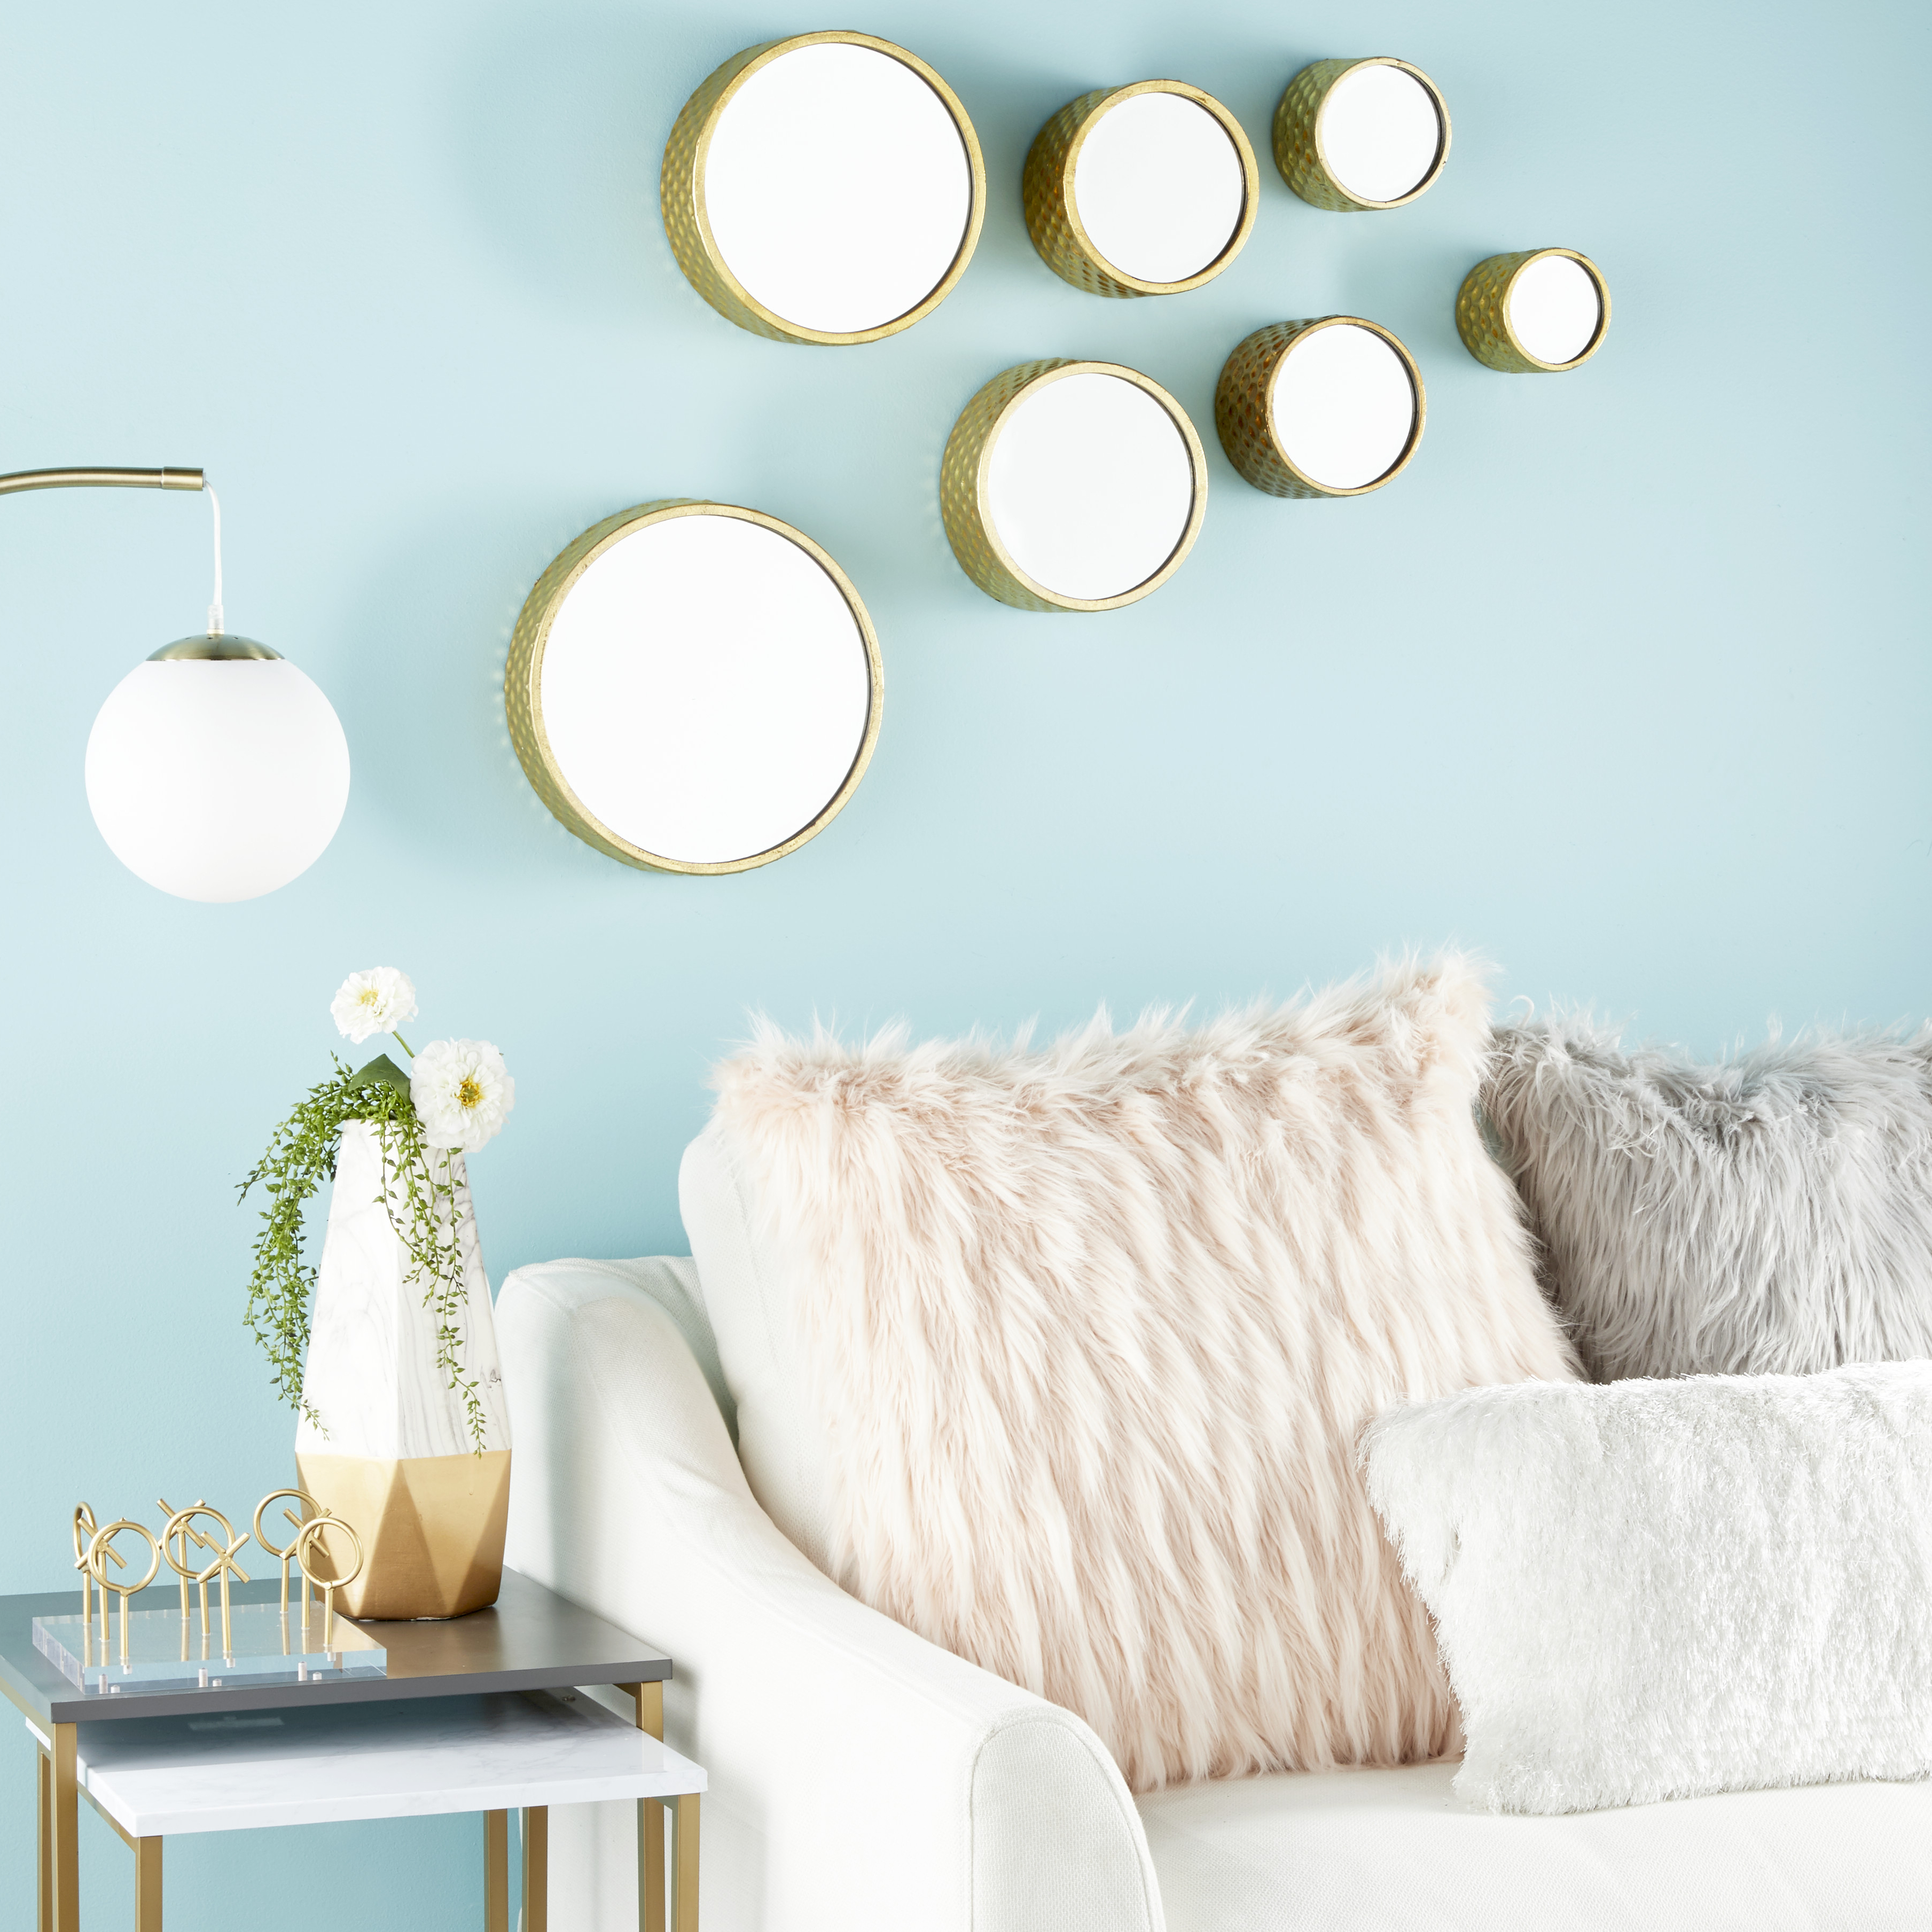 Fashionable Cosmoliving Small, Round Metallic Gold Hammered Metal Decorative Wall  Mirrors (View 7 of 20)